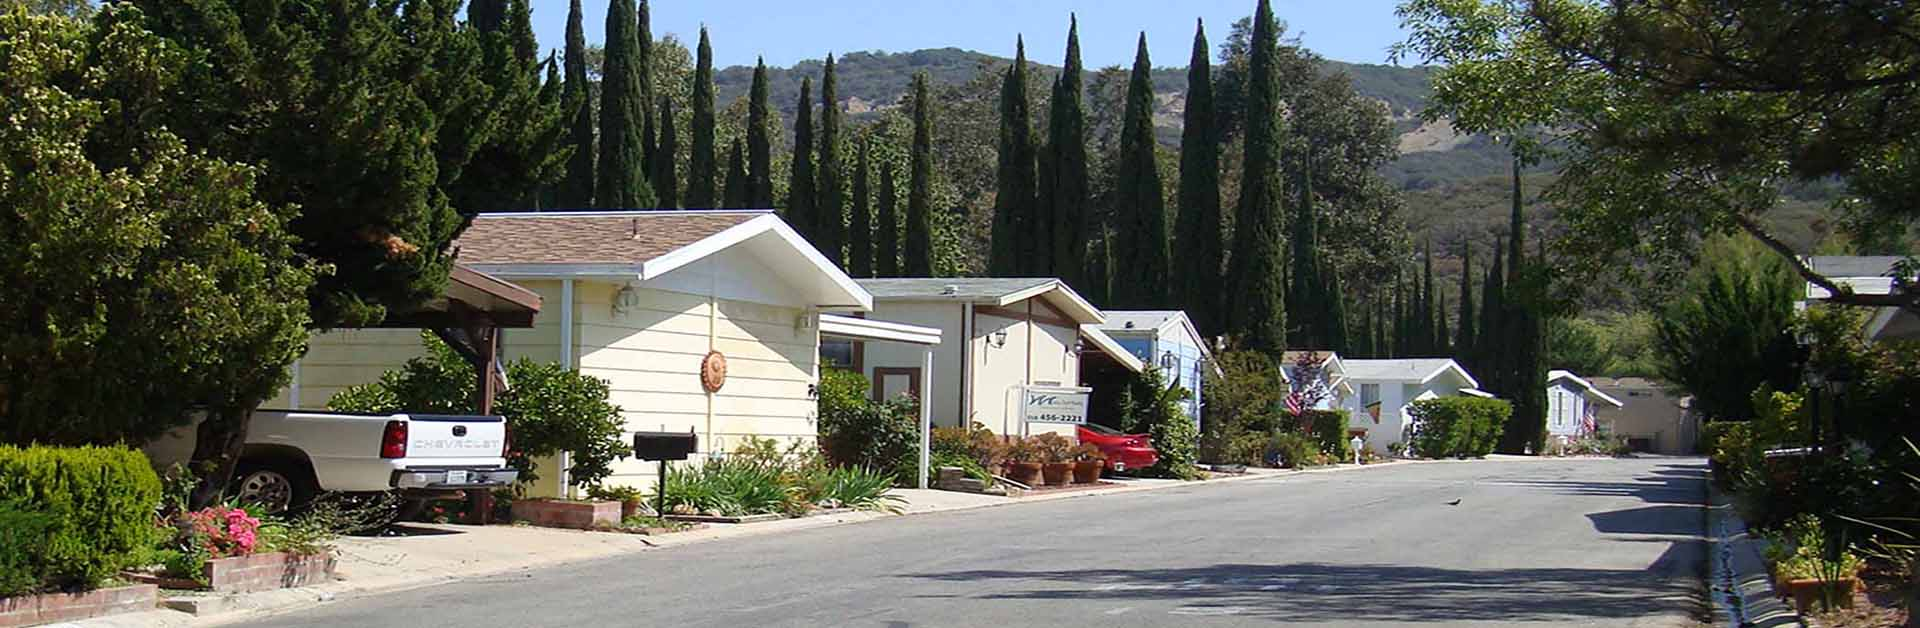 Mobile Home Parks In Riverside Ca